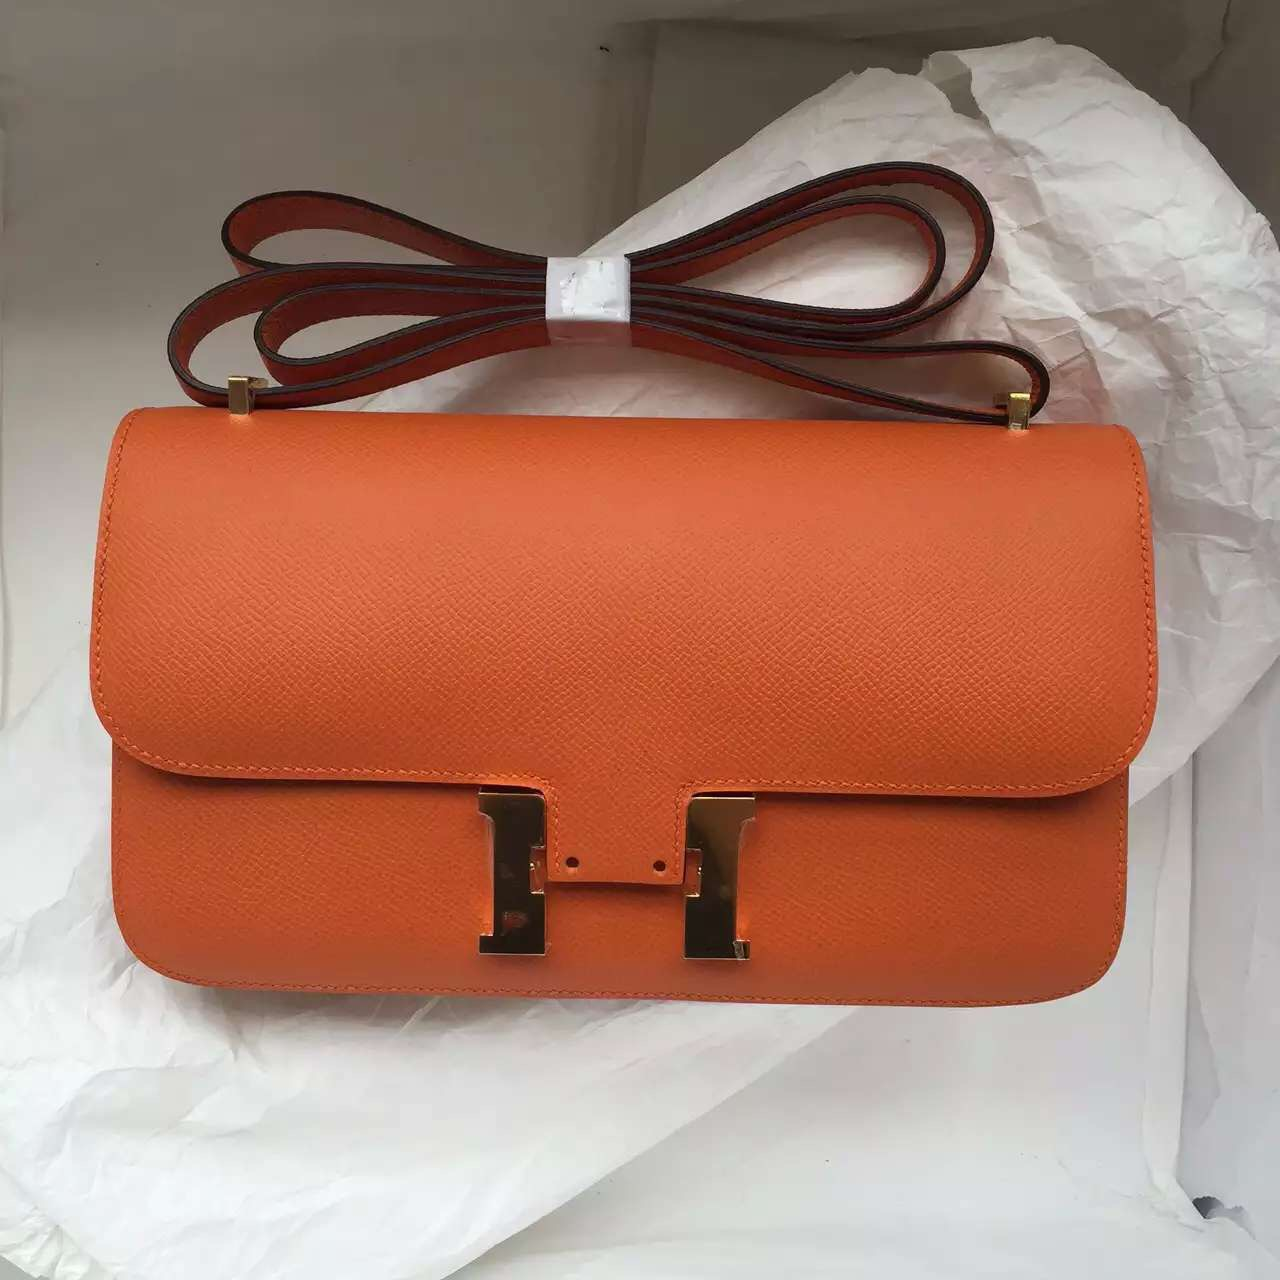 Hermes Epsom Leather Constance Bag in 93 Orange Color Fashion Women's Cross-body Bag